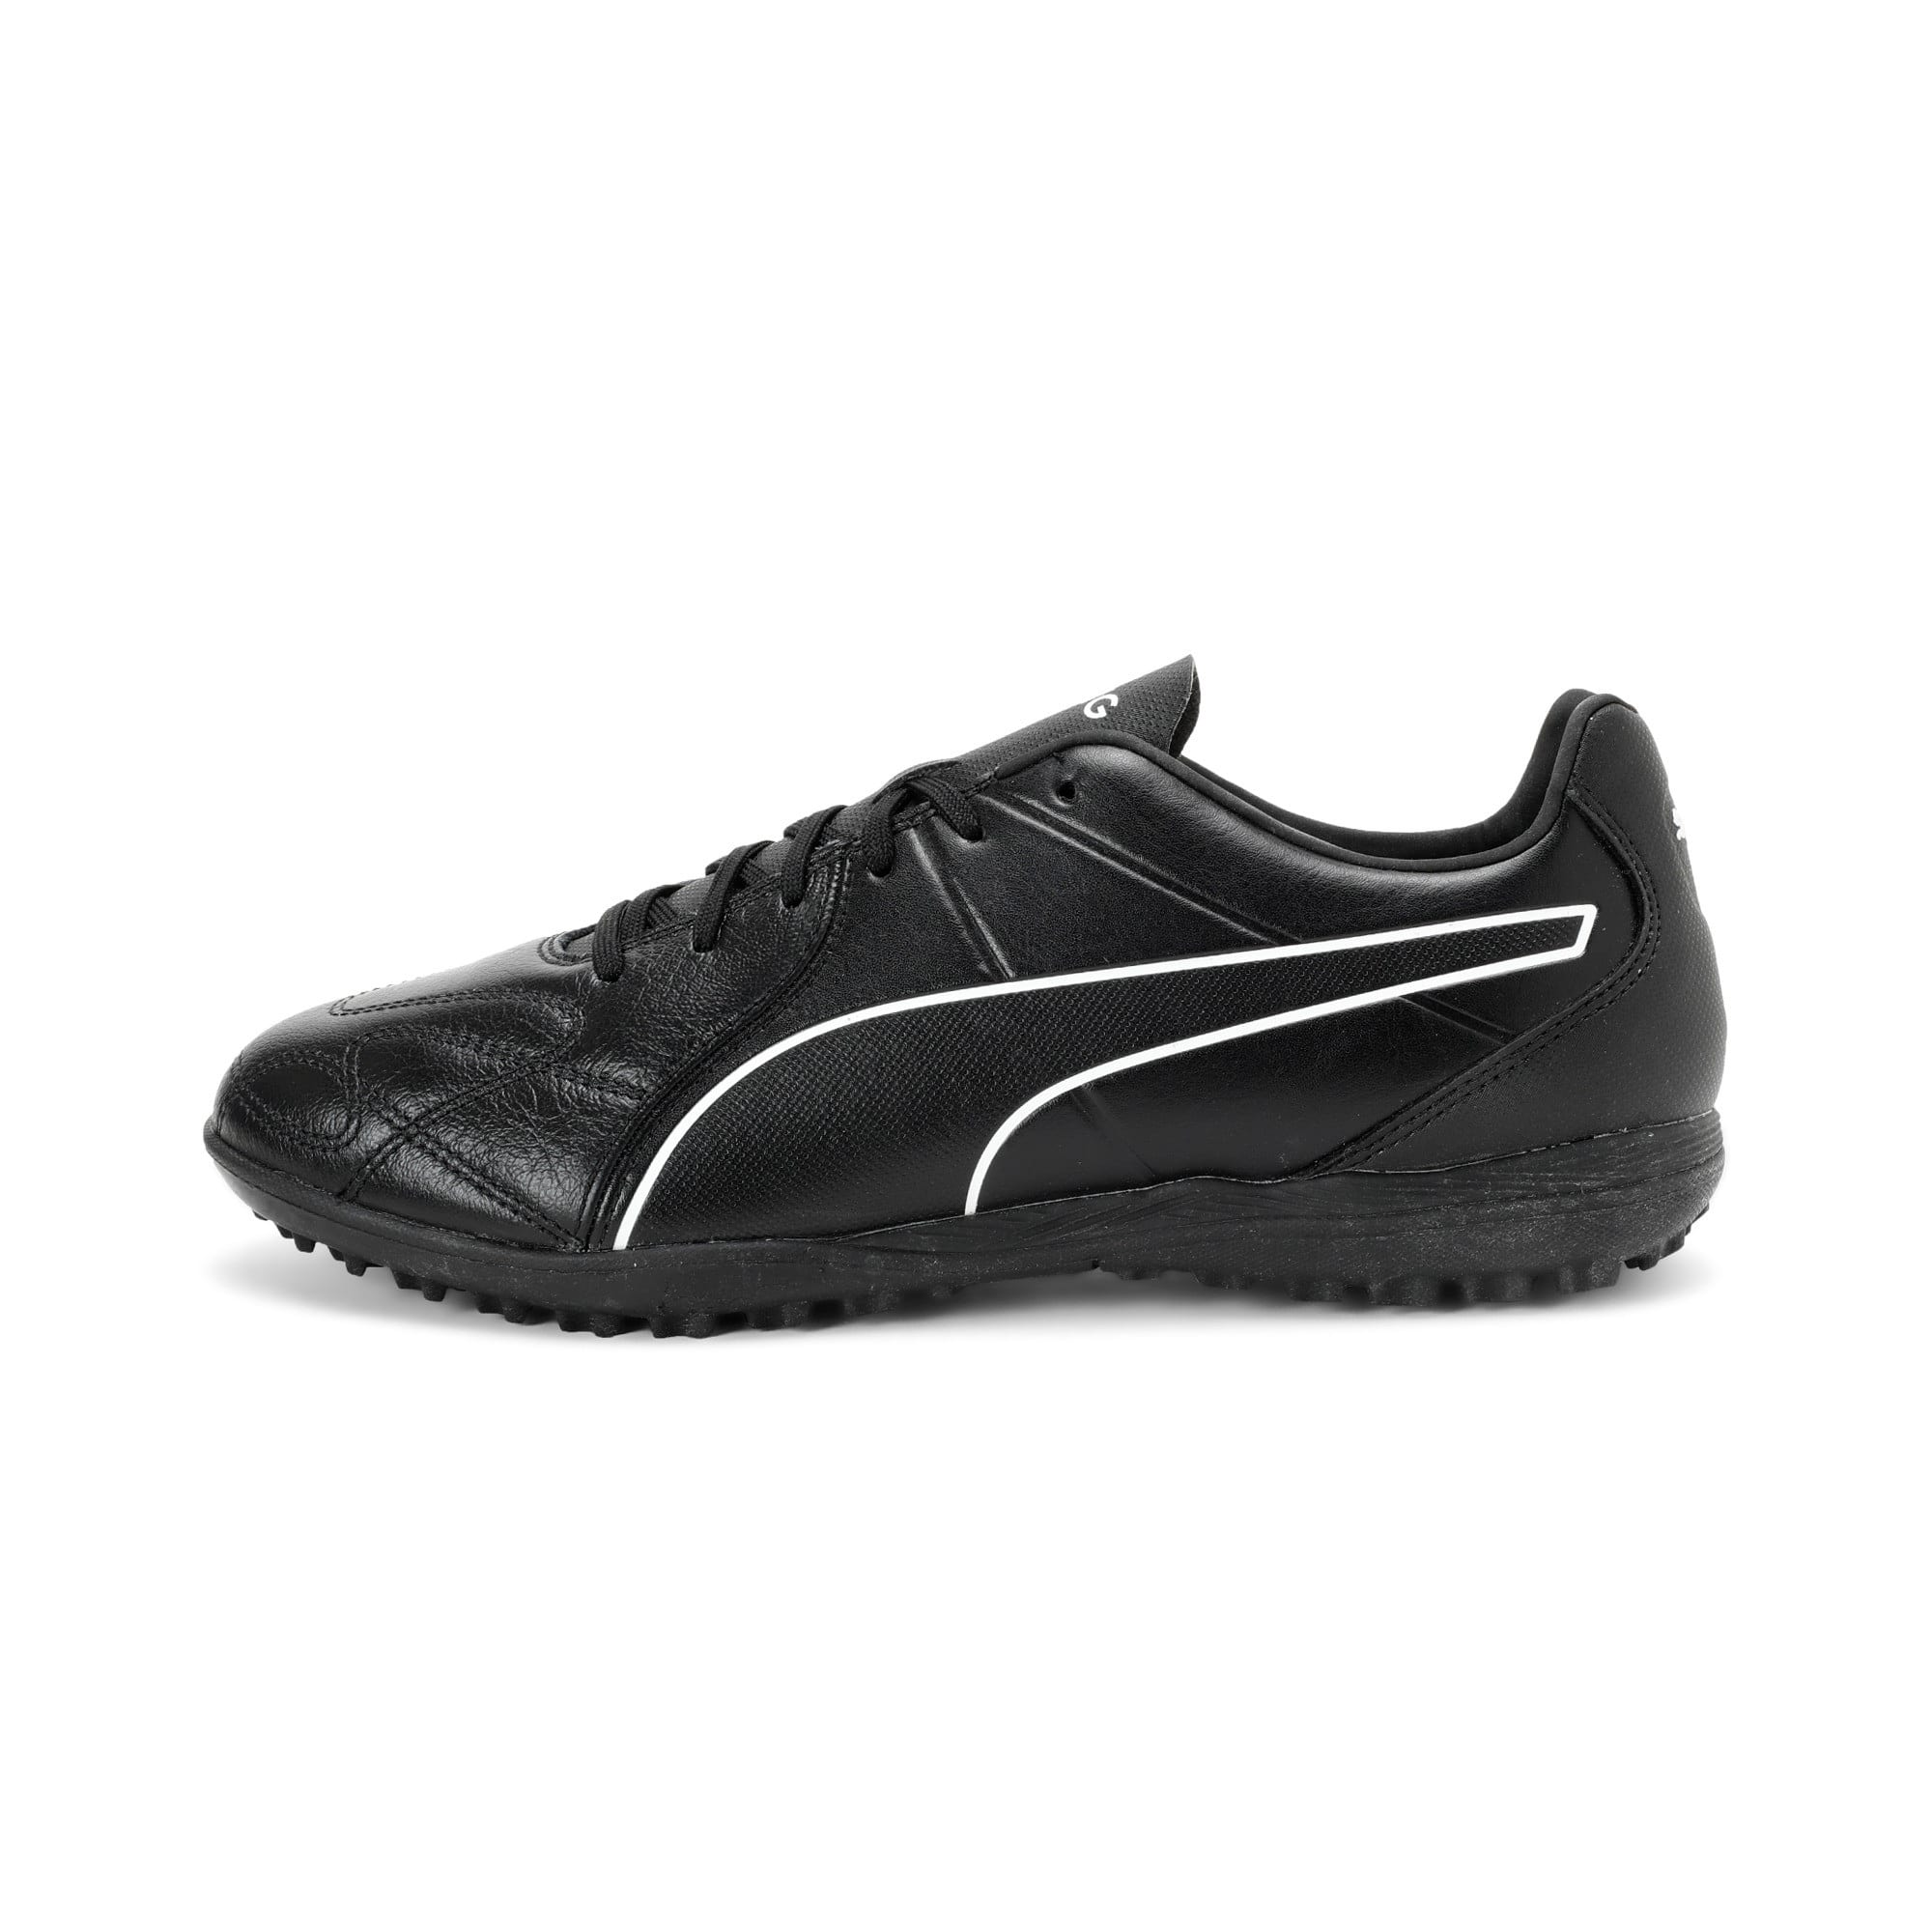 Thumbnail 1 of KING Hero TT Football Boots, Puma Black-Puma White, medium-IND